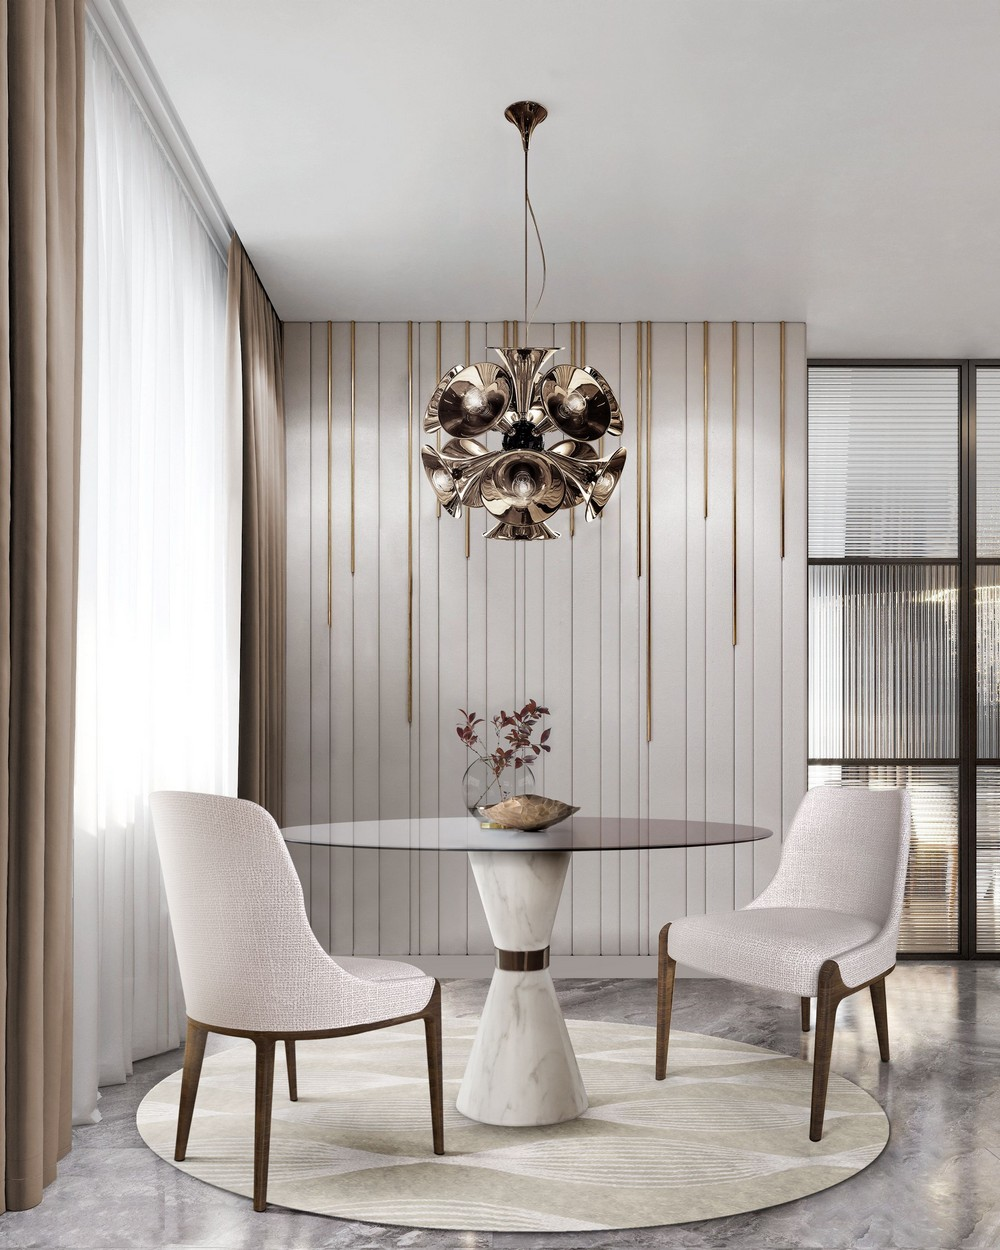 How To Use Contemporary Neutrals In Your Dining Room dining room How To Use Contemporary Neutrals In Your Dining Room bvaxMozA